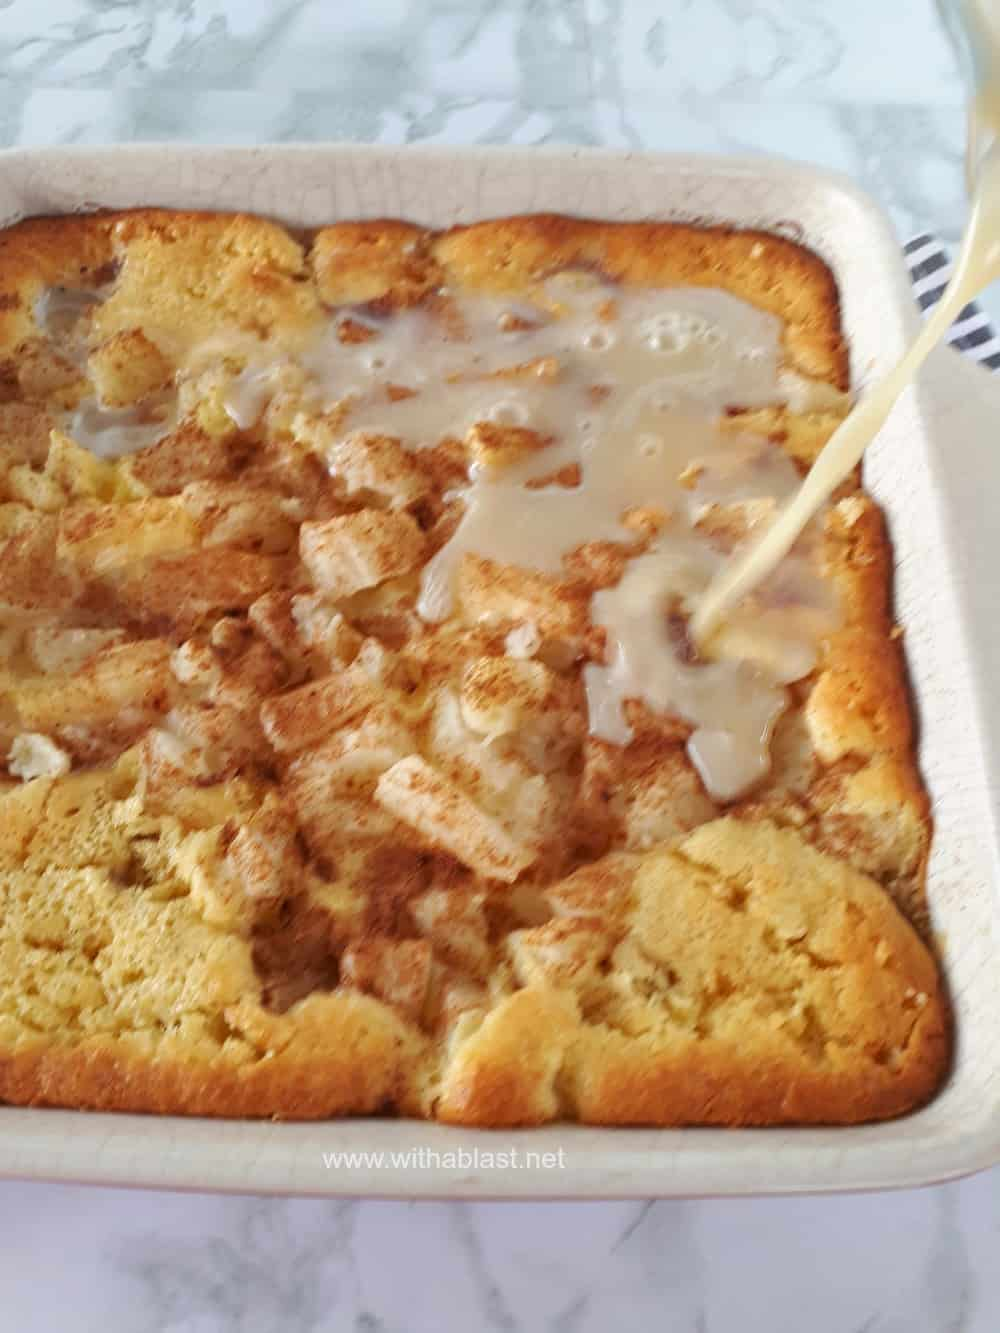 This is the best Apple and Pineapple Cake Tart around ! Perfect Fall, Thanksgiving dessert and so easy to make too